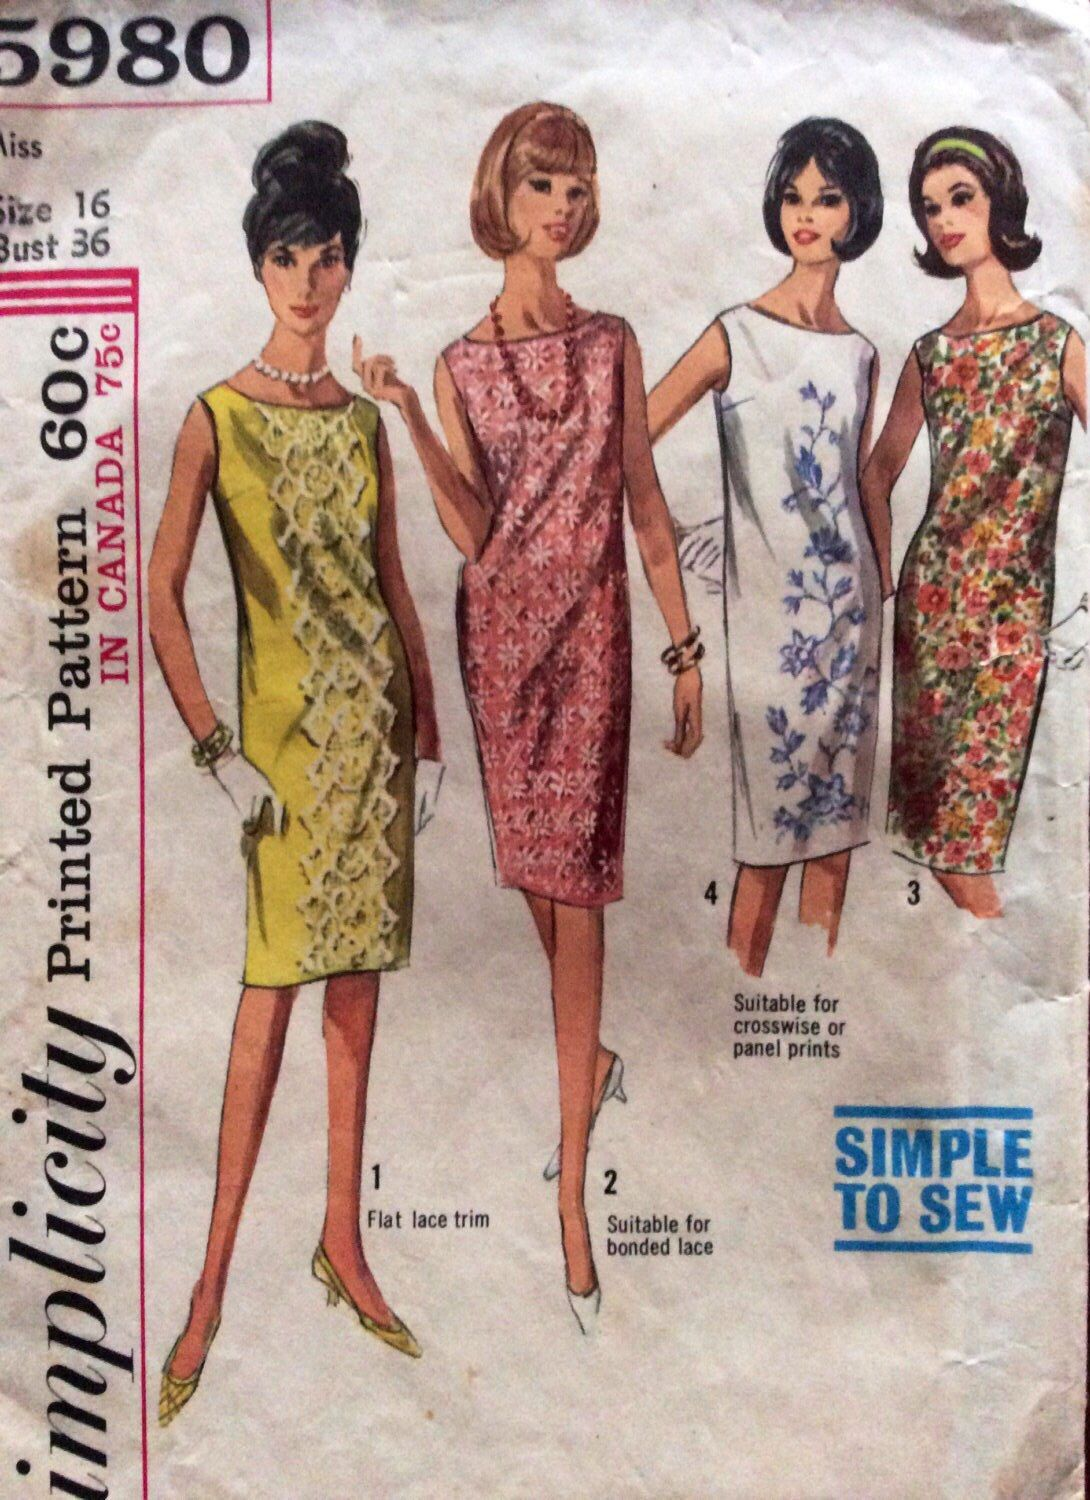 1960s Easy Shift Dress Simplicity 5980 Vintage Sewing Pattern Bust 36 Waist 28 Hip 38 Retro Simplicity Patterns Dresses Vintage Shift Dress Shift Dress Pattern [ 1500 x 1090 Pixel ]